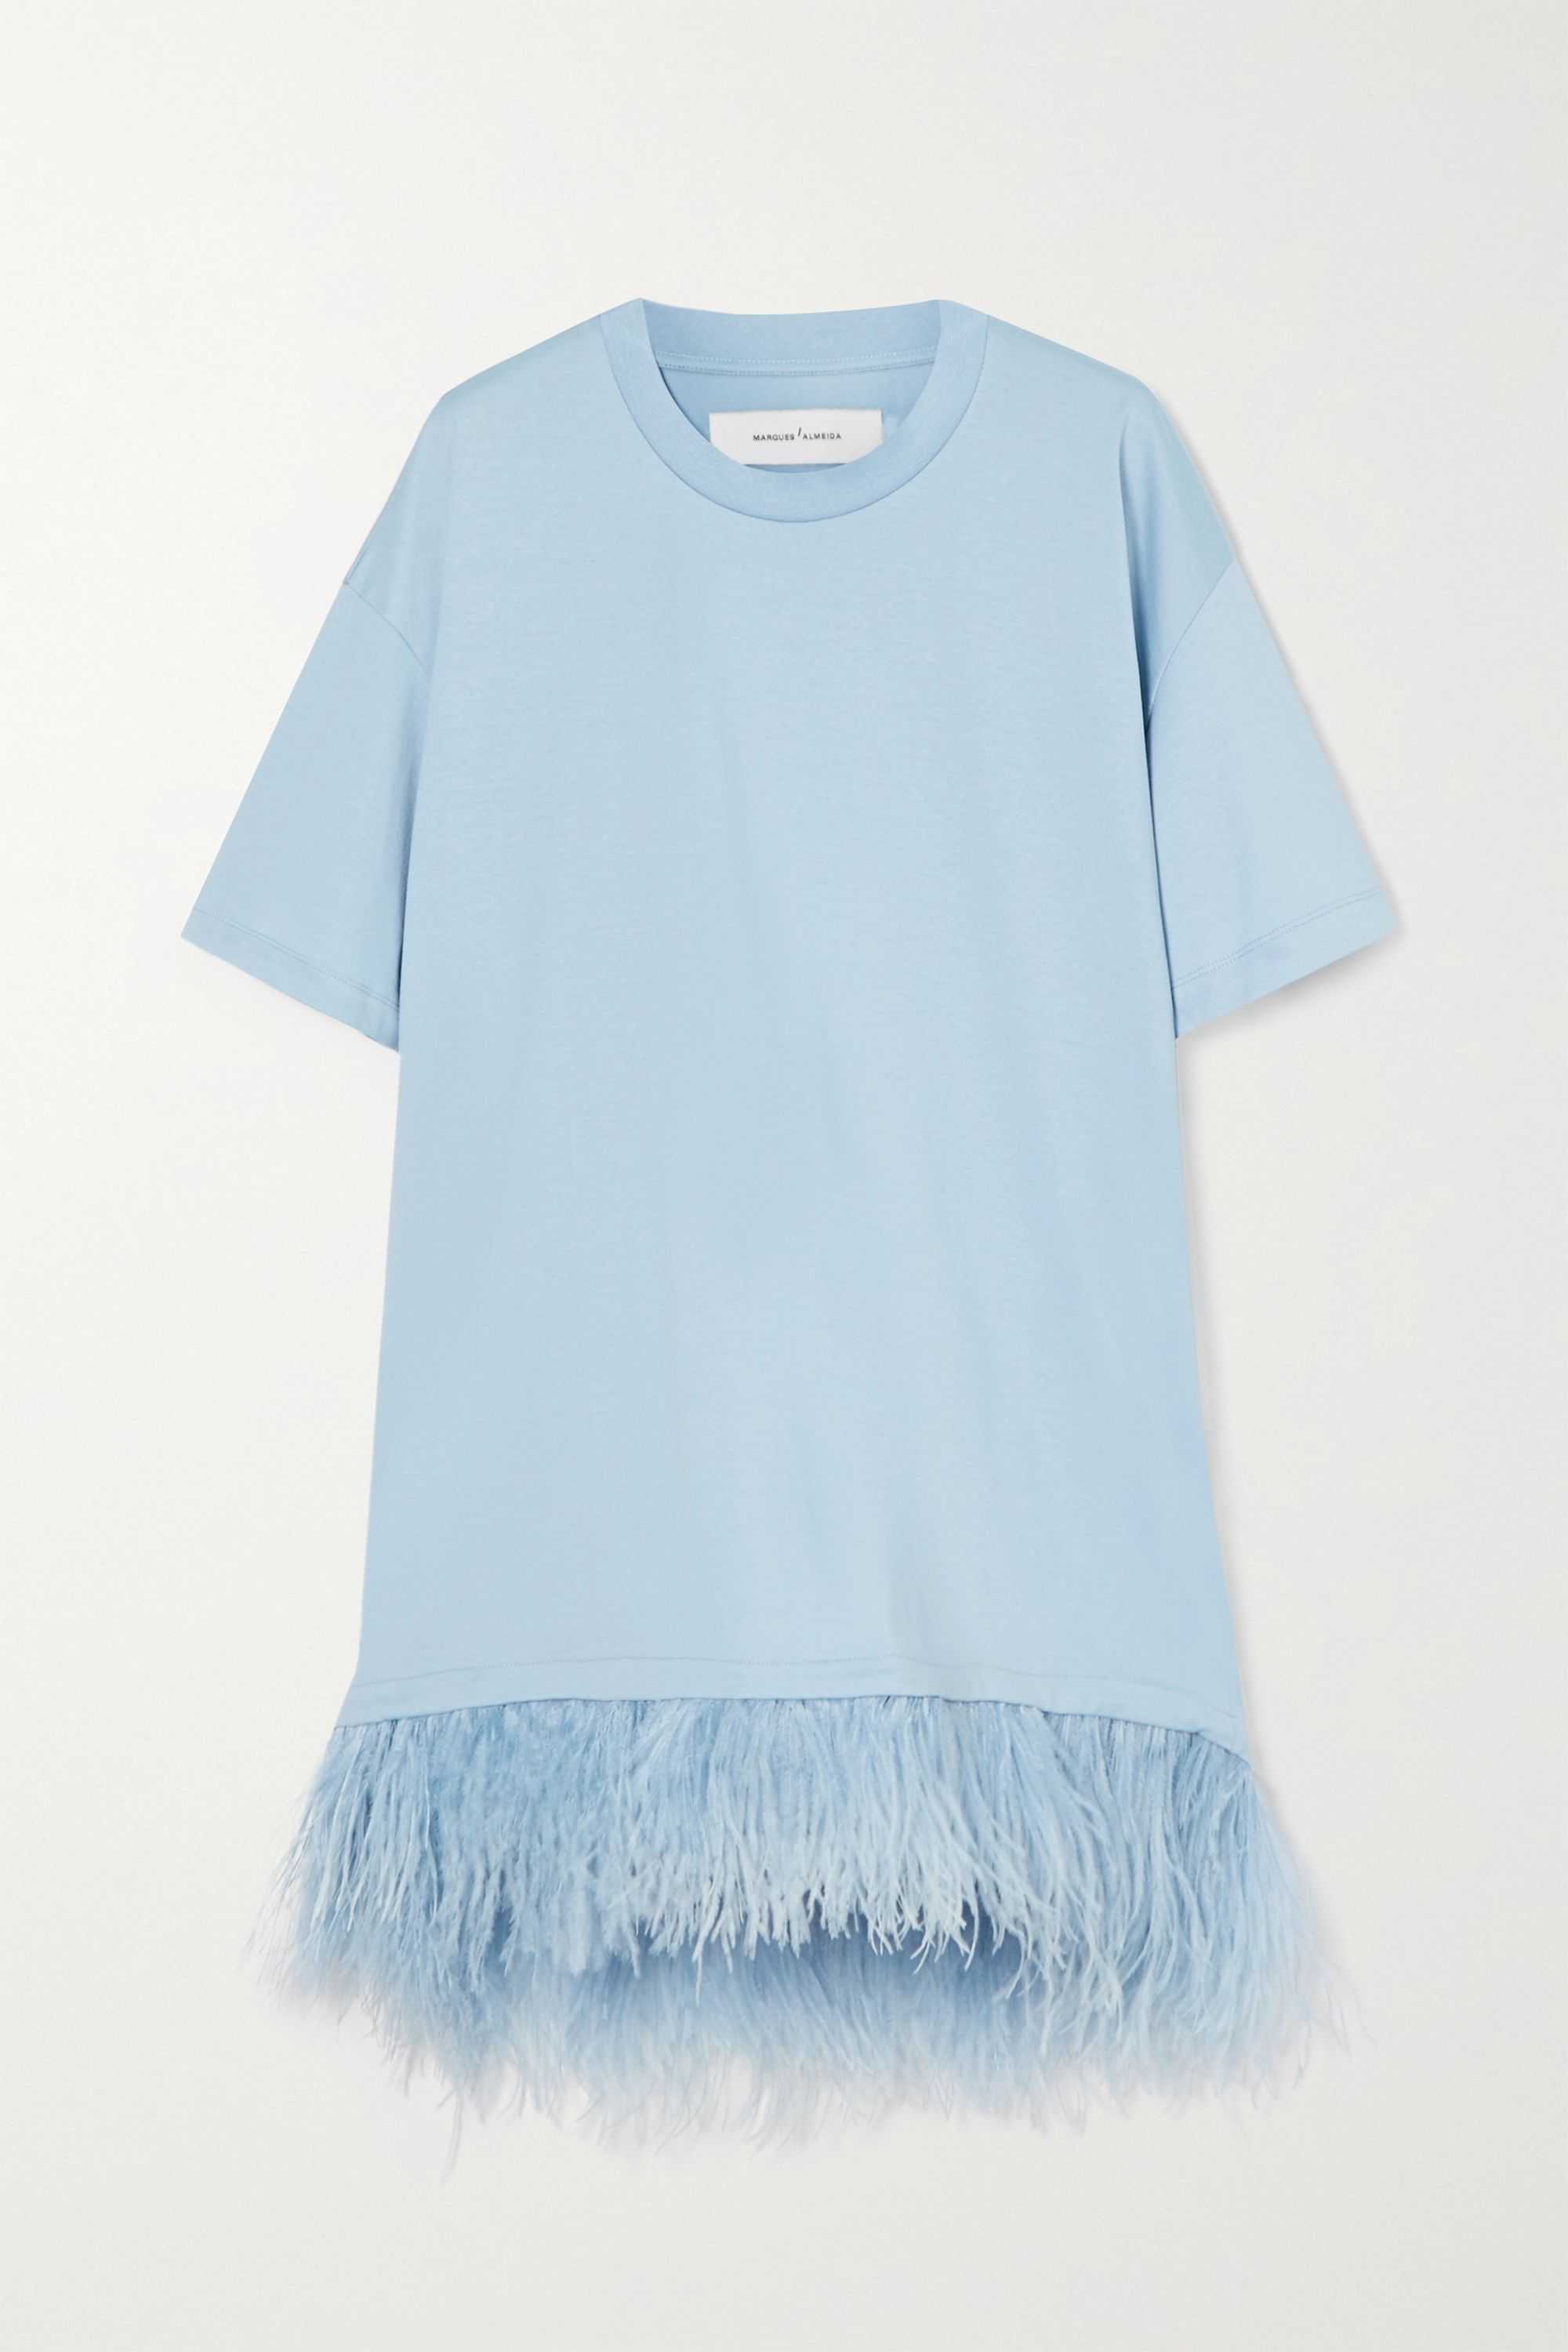 Marques' Almeida Feather-trimmed cotton-jersey mini dress